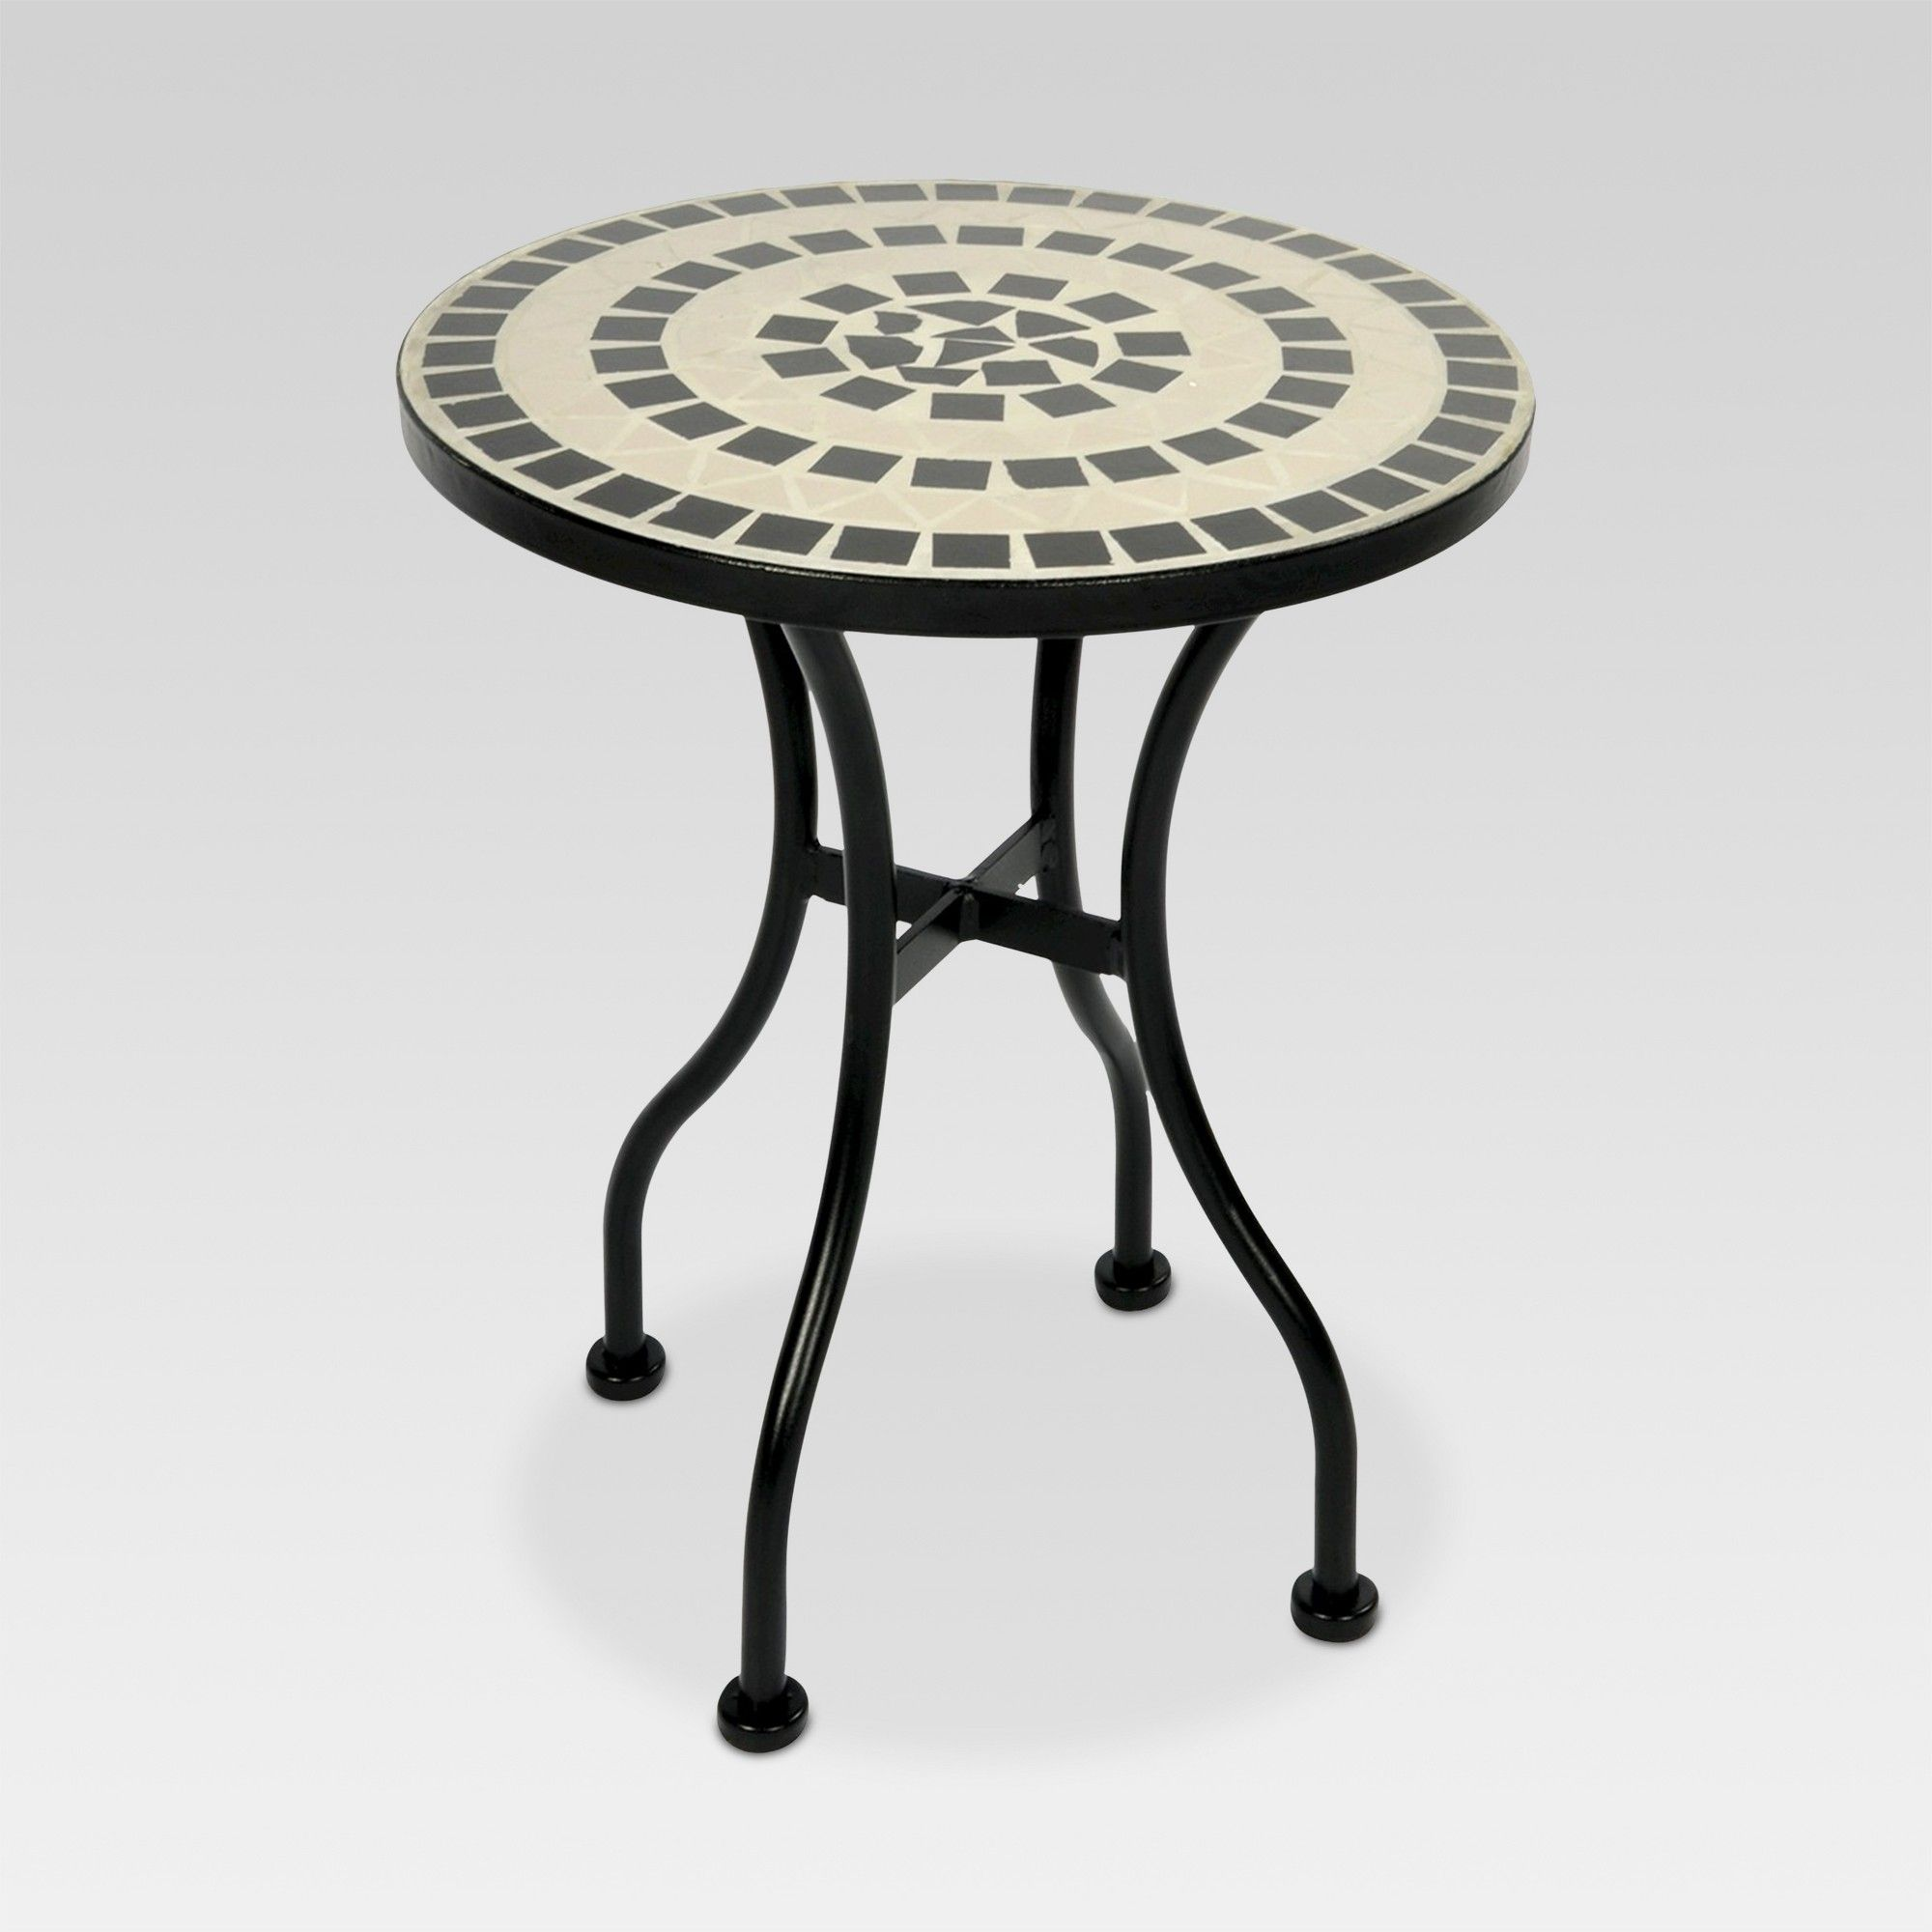 mosaic patio accent table white threshold black round brass end and area rugs modern square ashley furniture wooden bedside designs marble dinner side for living room plastic